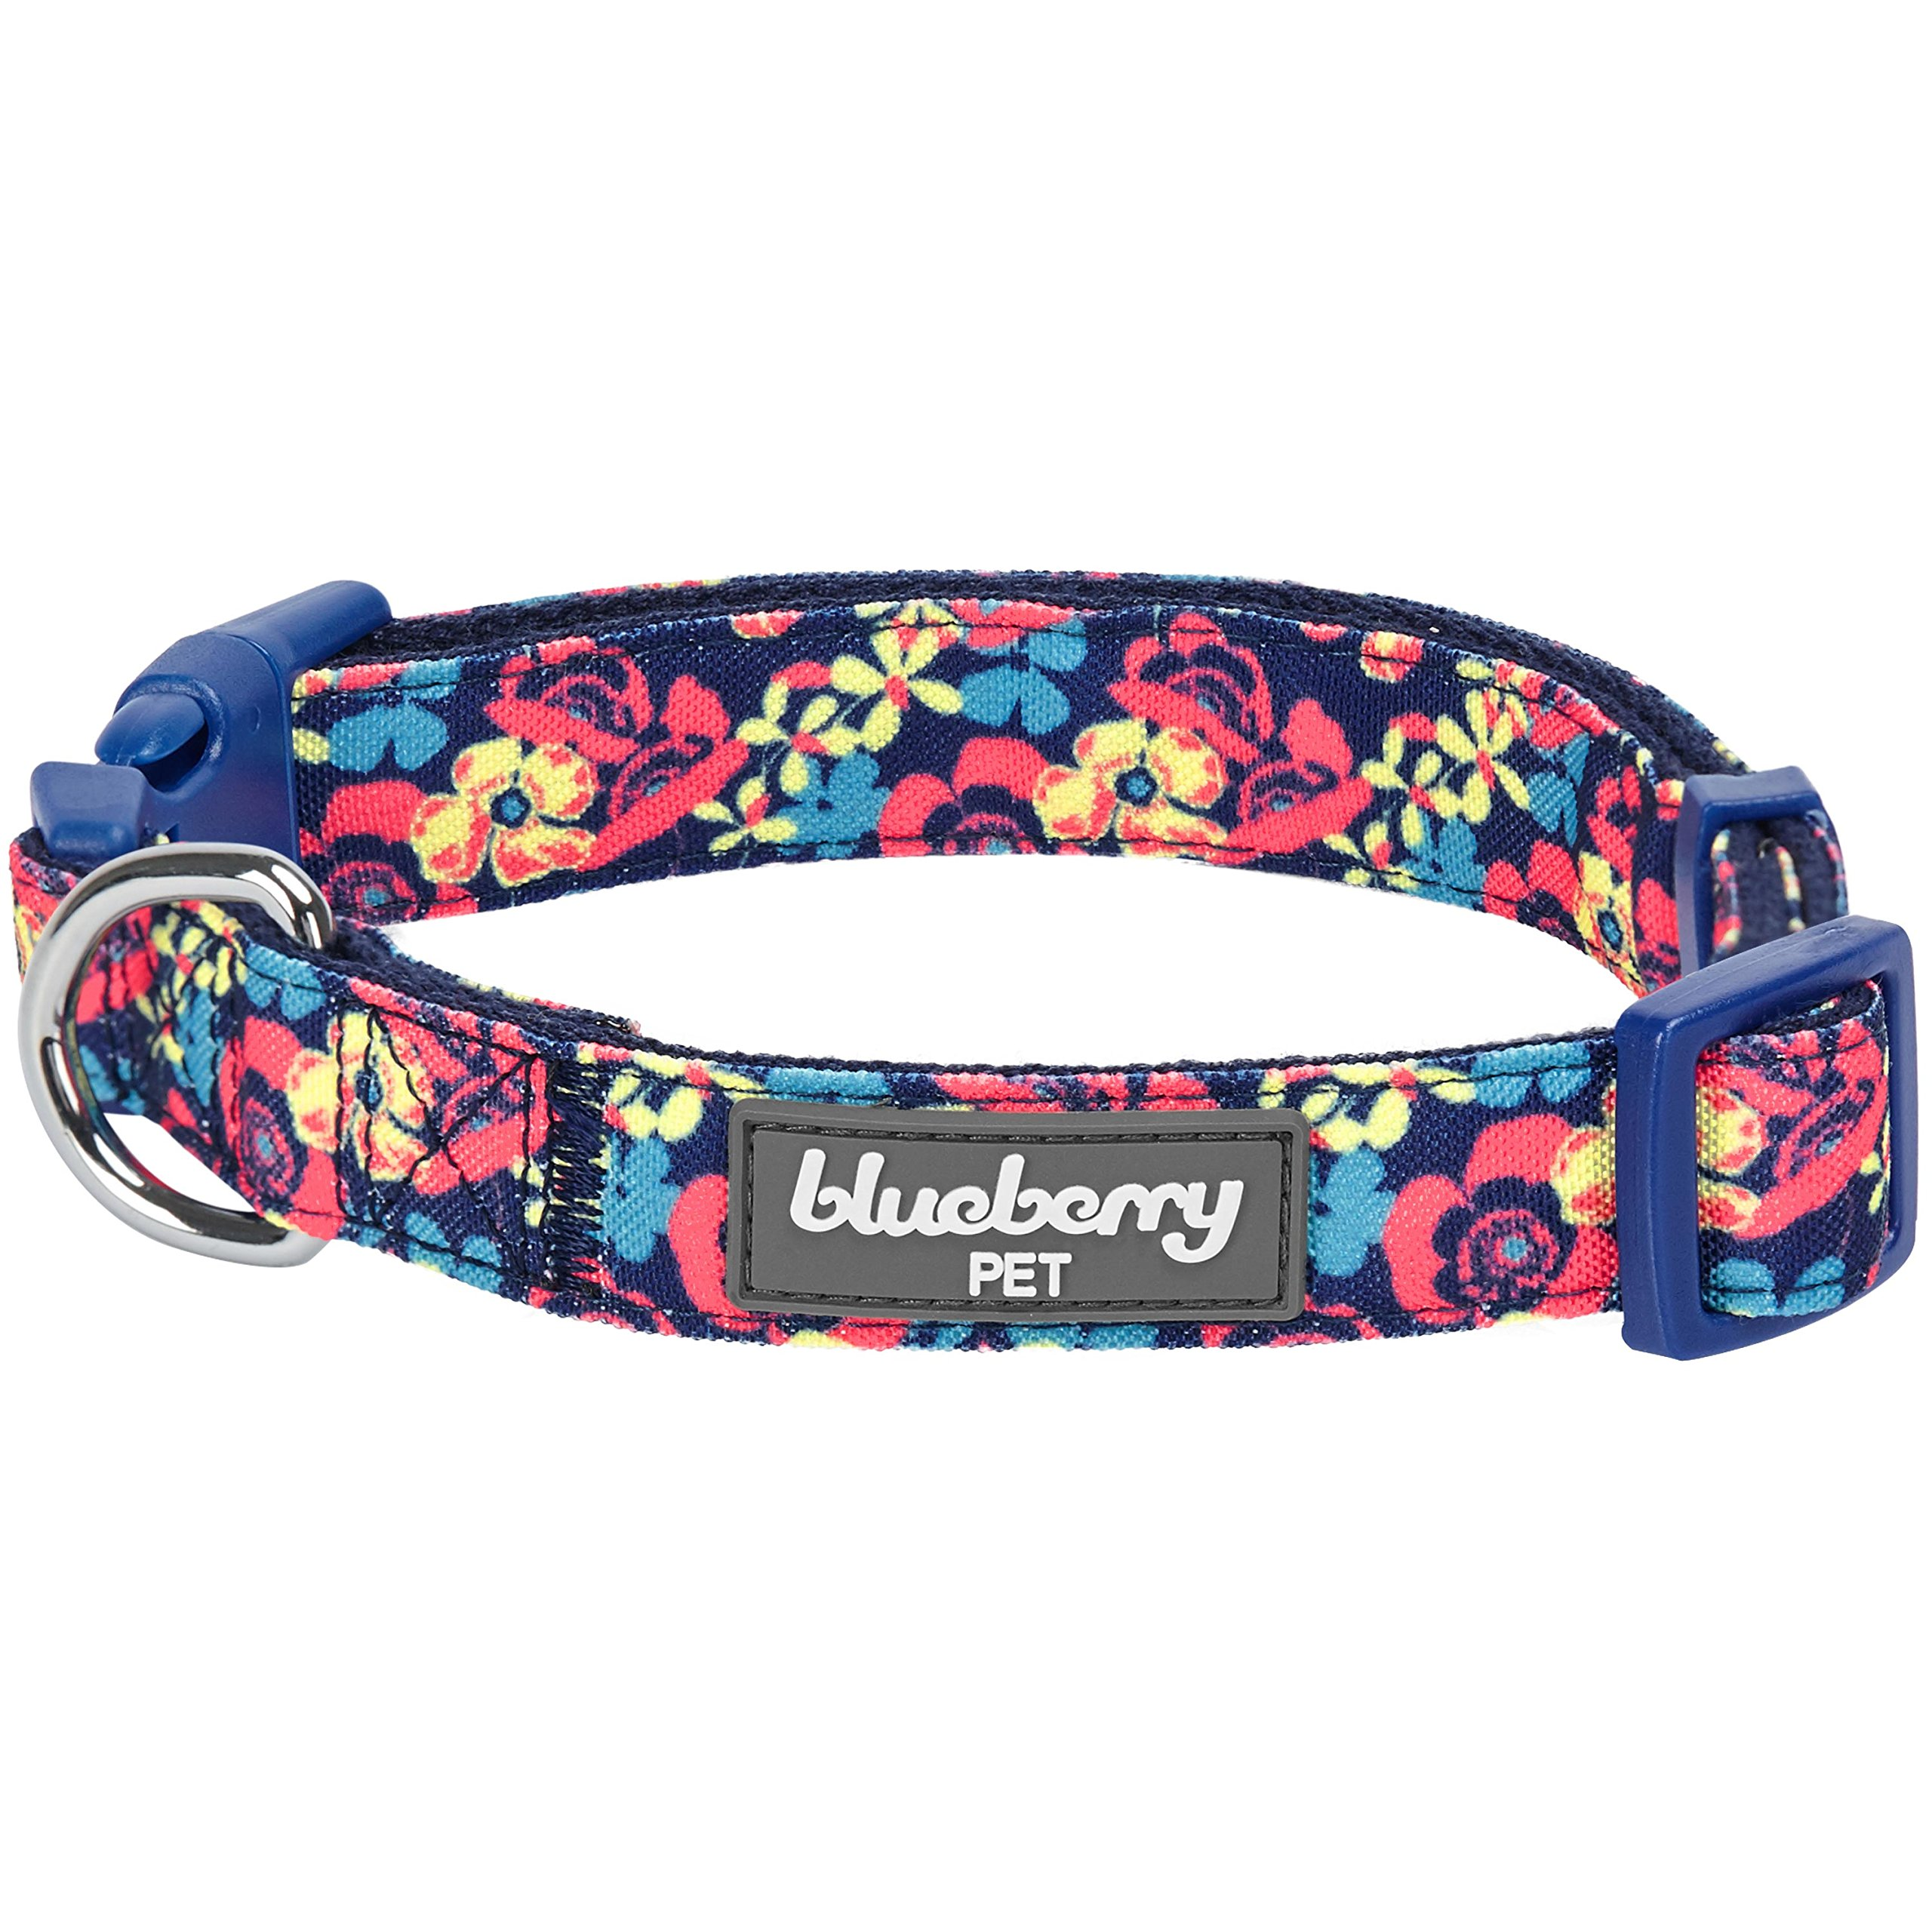 Blueberry Pet 10+ Patterns Made Well Floral Collection - Dog Collars, Harnesses, Leashes, Harness Dresses or Toys